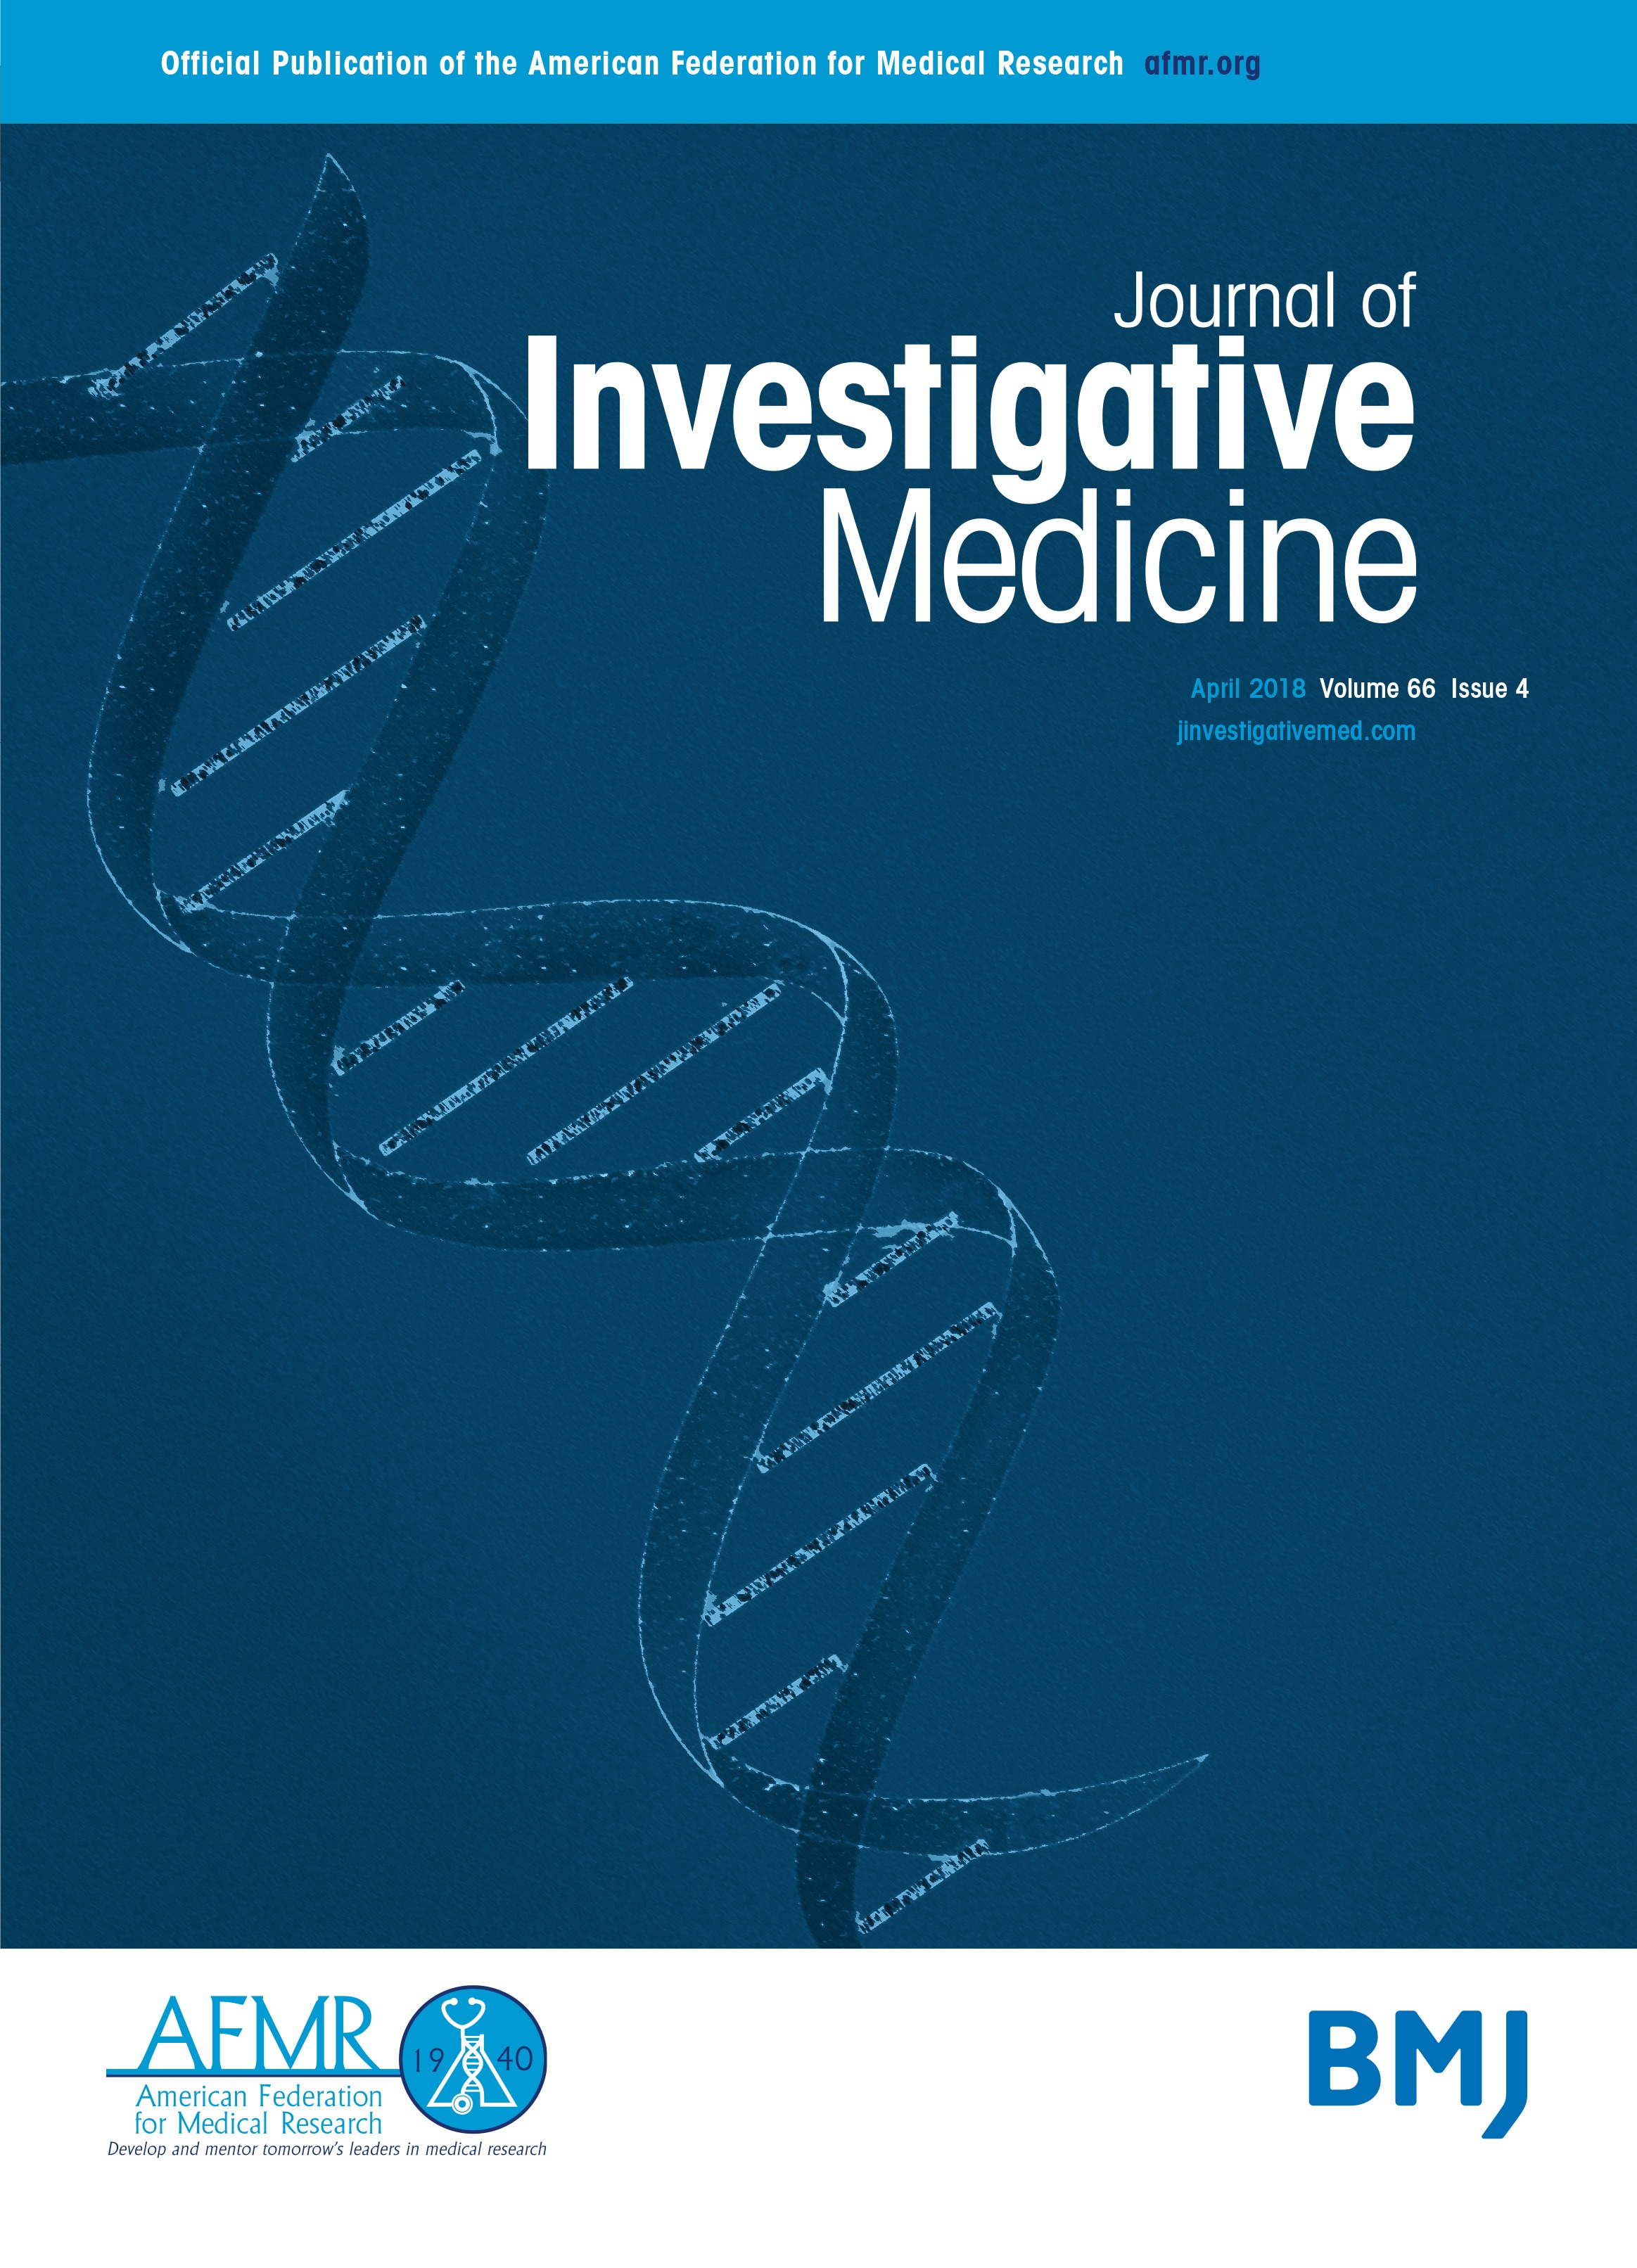 Microrna 452 Exerts Growth Suppressive Activity Against T